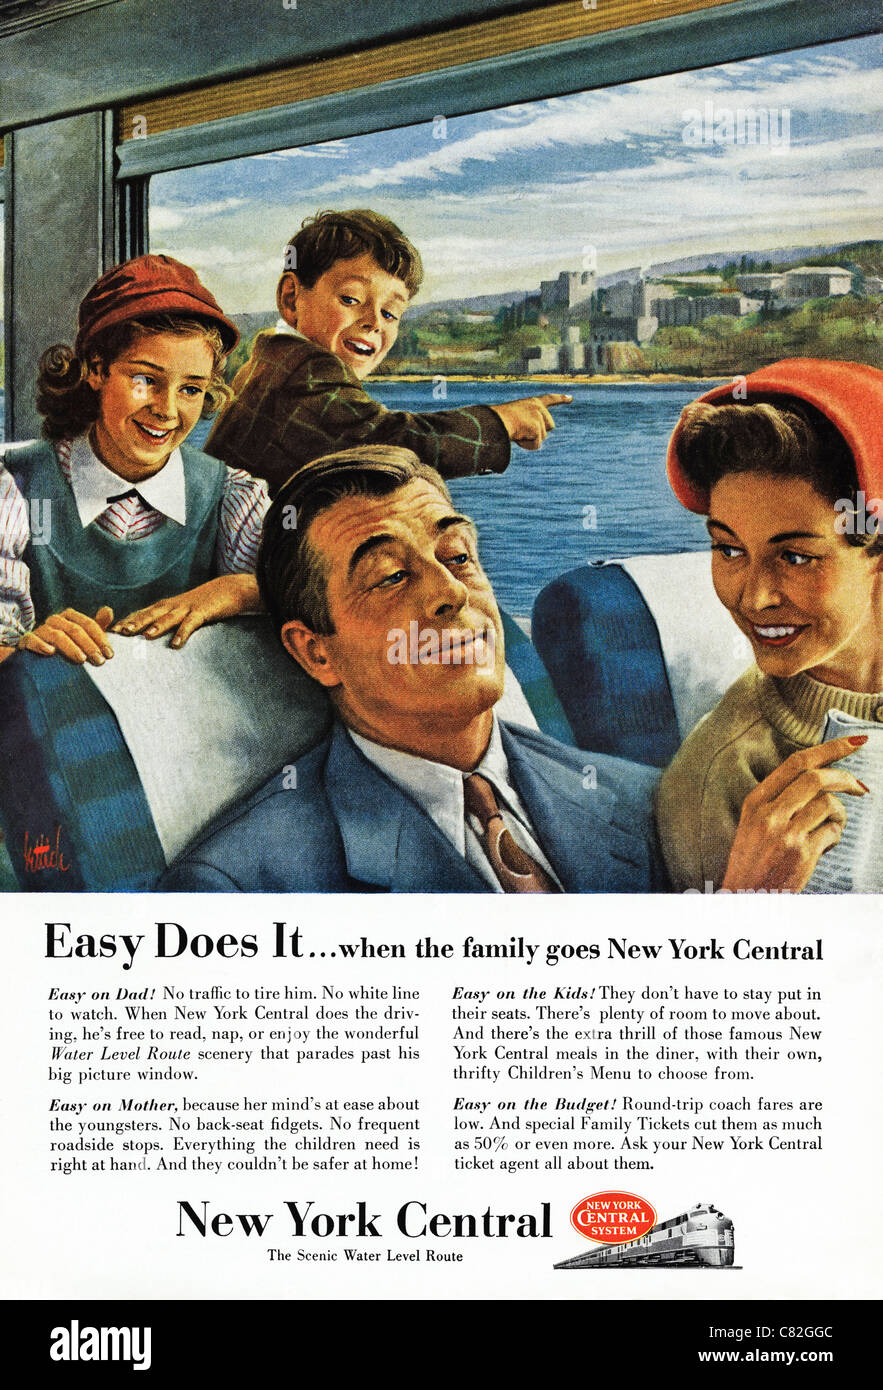 American magazine advertisement circa 1954 advertising family travel on NEW YORK CENTRAL railway - Stock Image